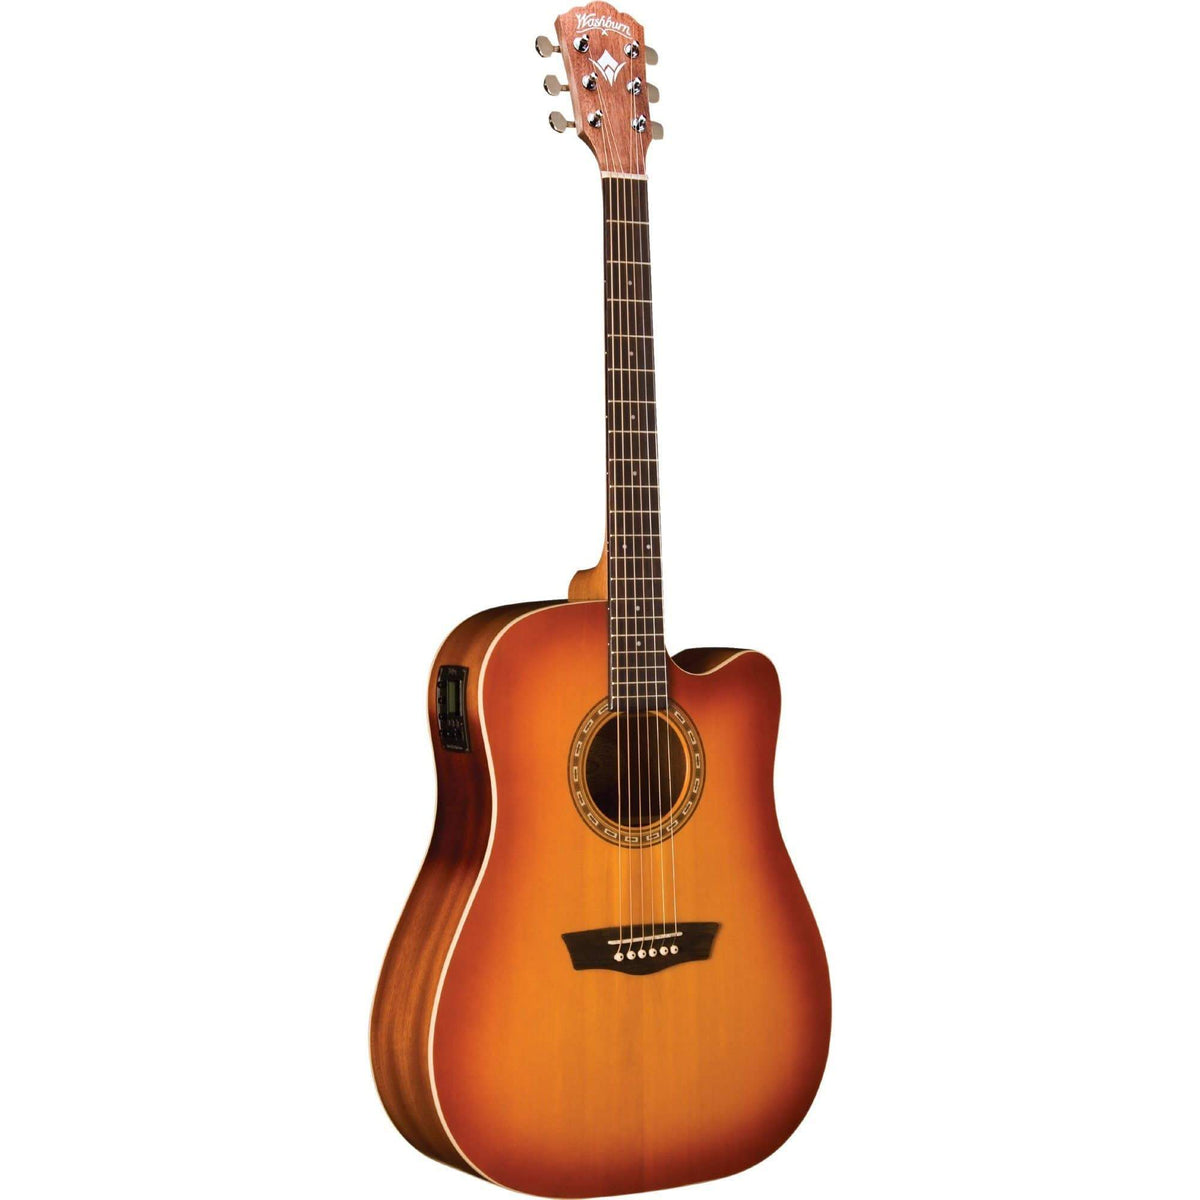 Washburn WD7SCEACSM Semi-Acoustic Guitar - Antique Cherry Sunburst Matte